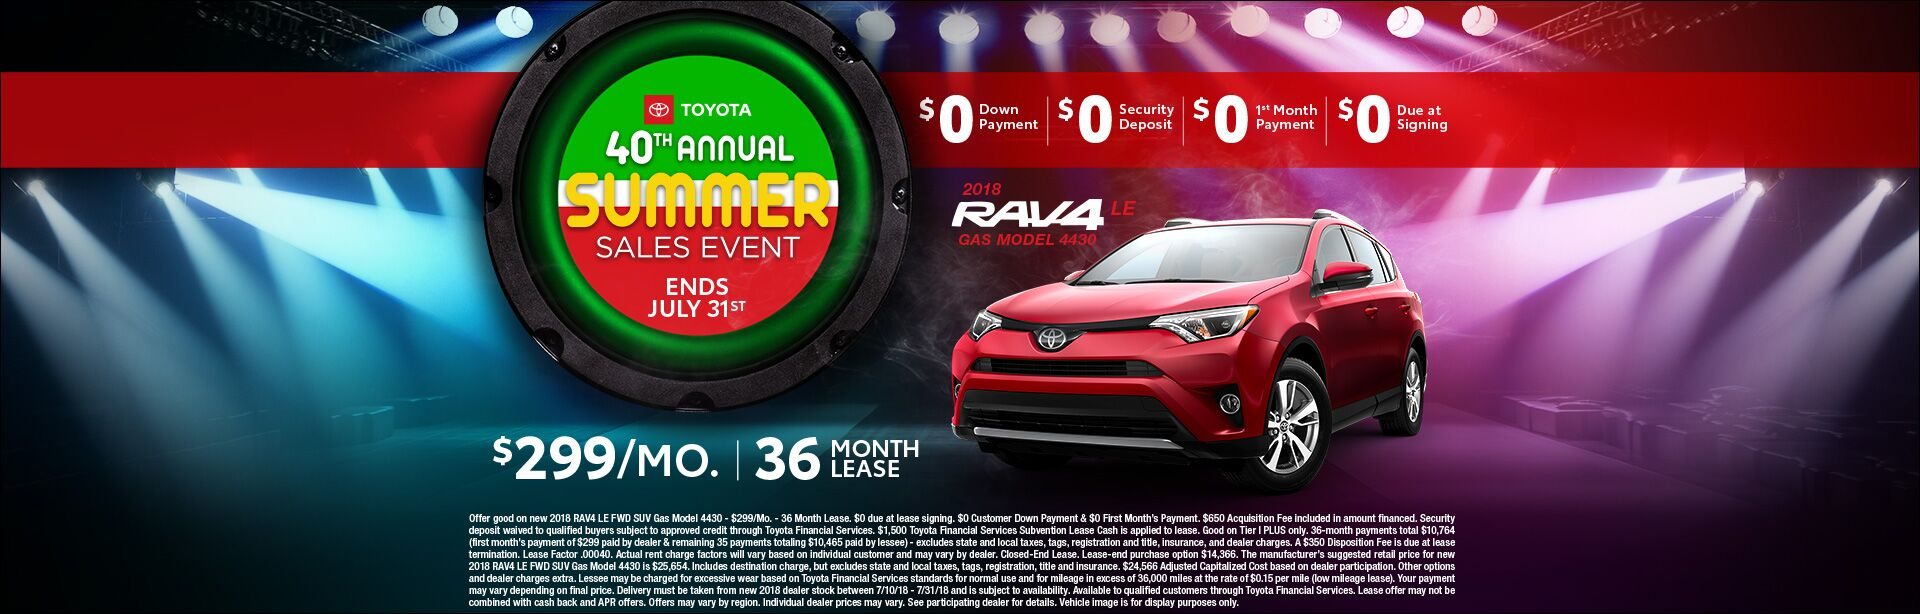 Toyota Summer Sales Event Rav4 Lease